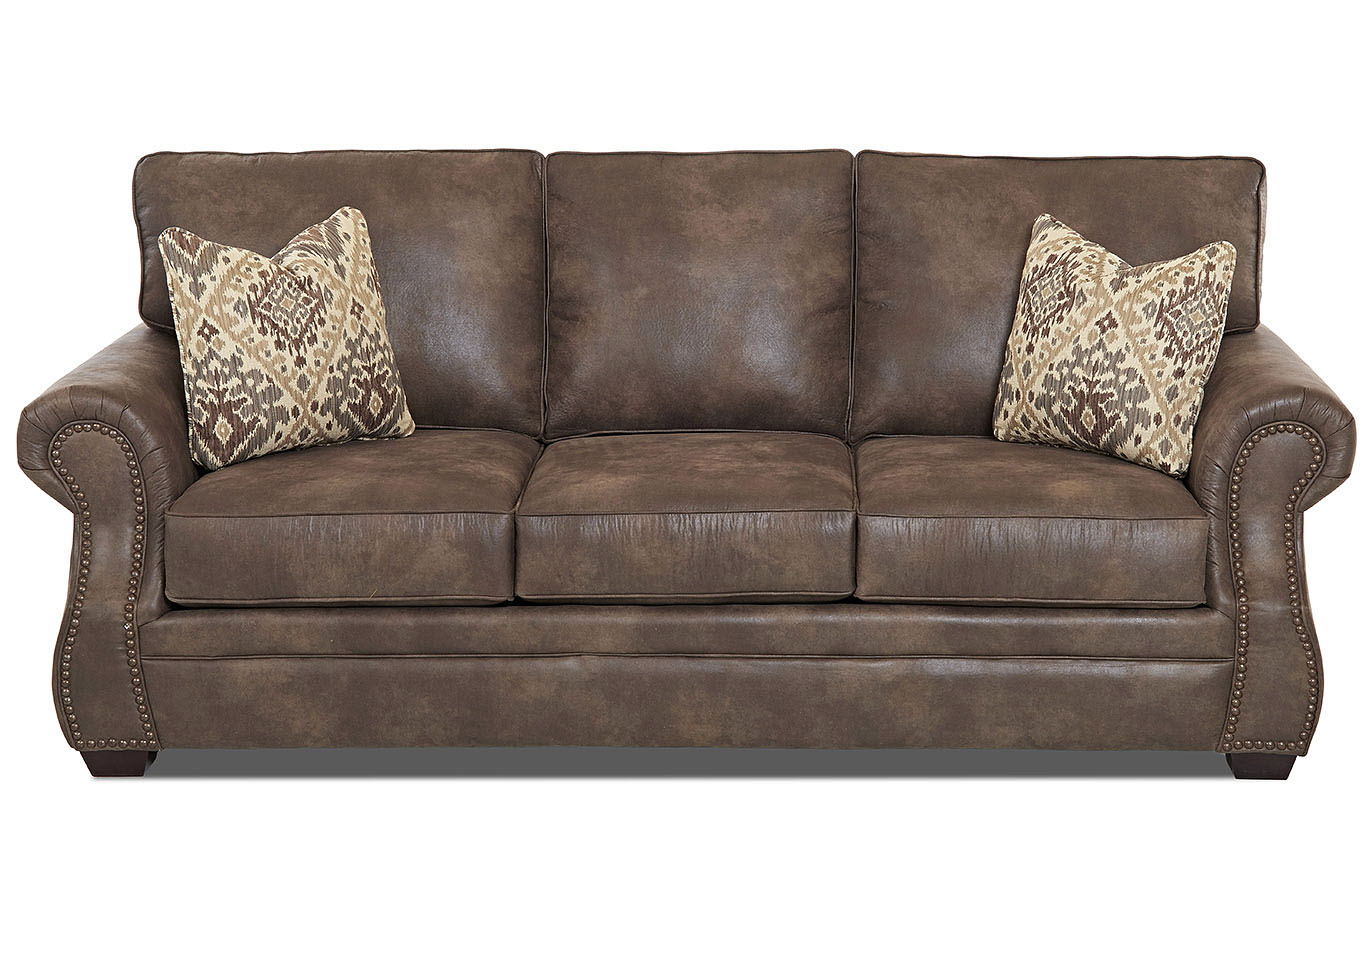 Jasper Taupe Stationary Leather Sofa,Klaussner Home Furnishings